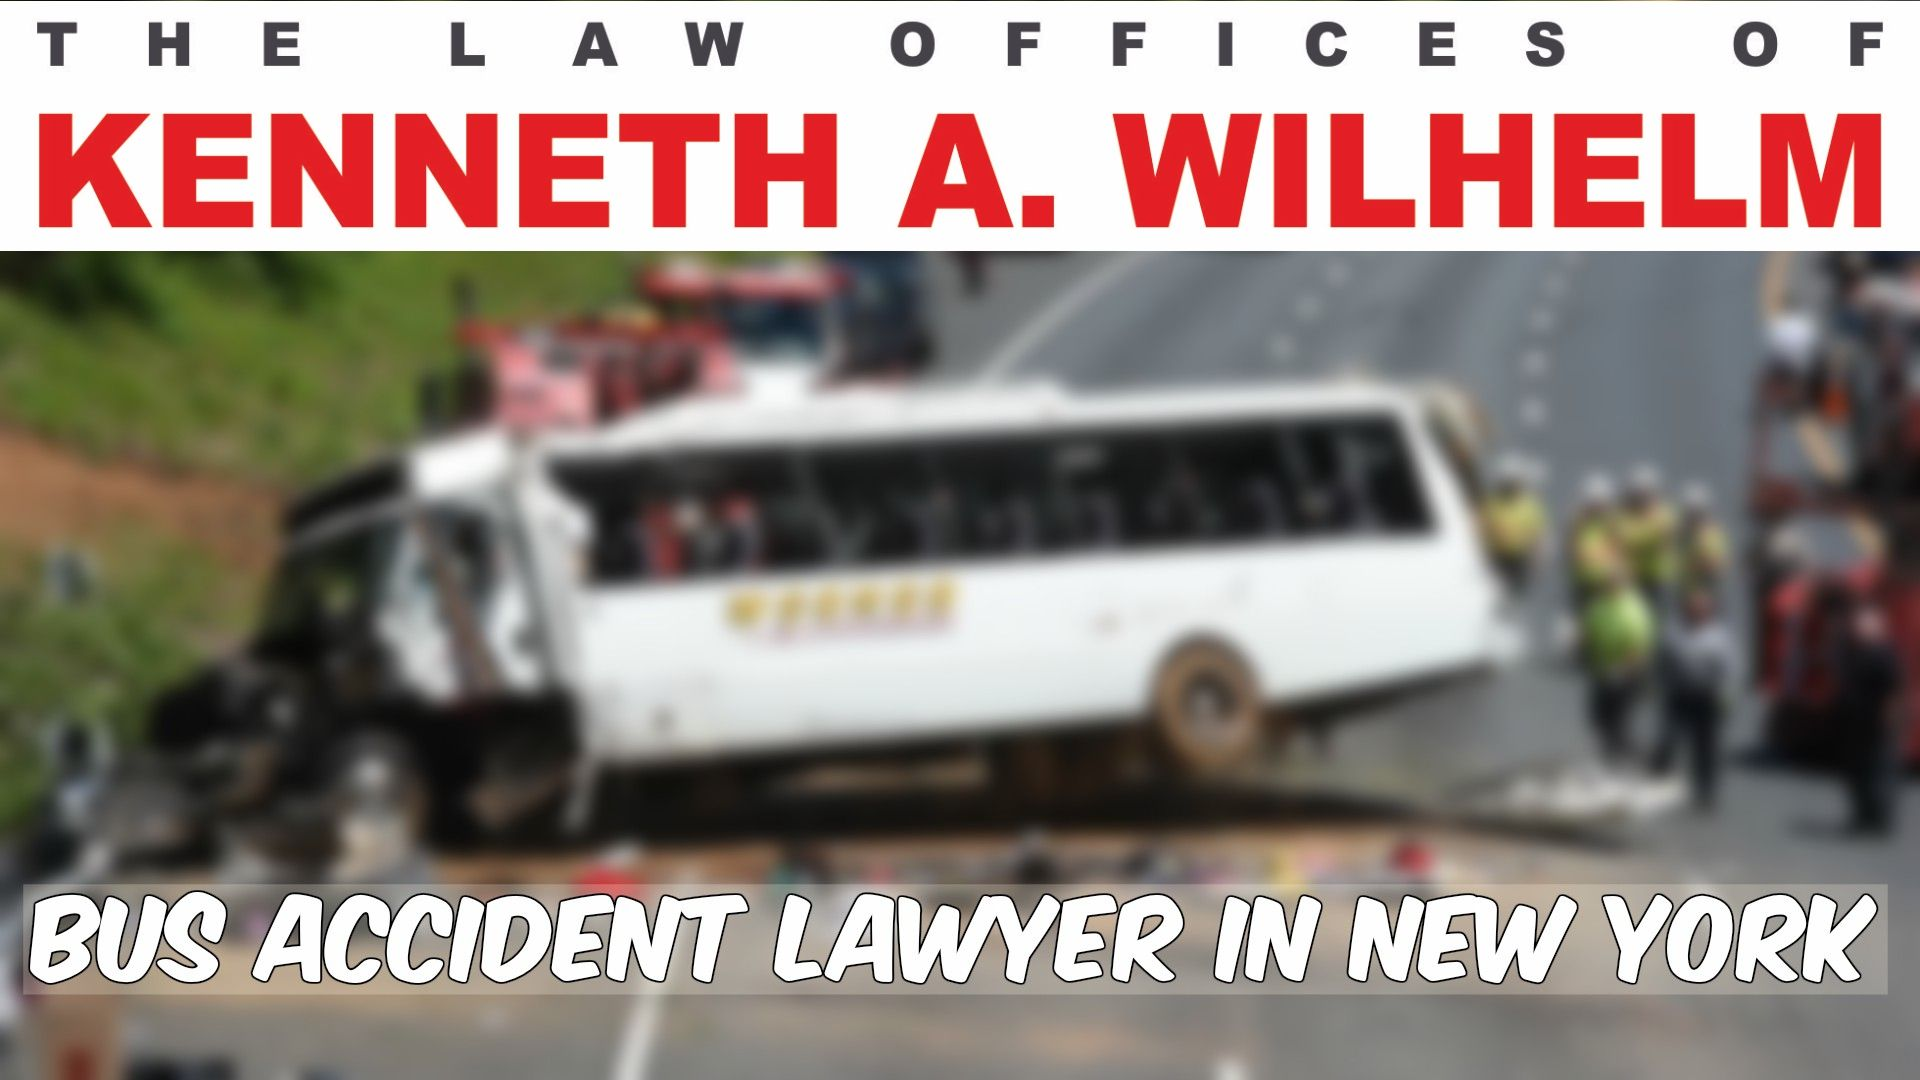 Are You Involved In A Bus Accident York New York Lawyer